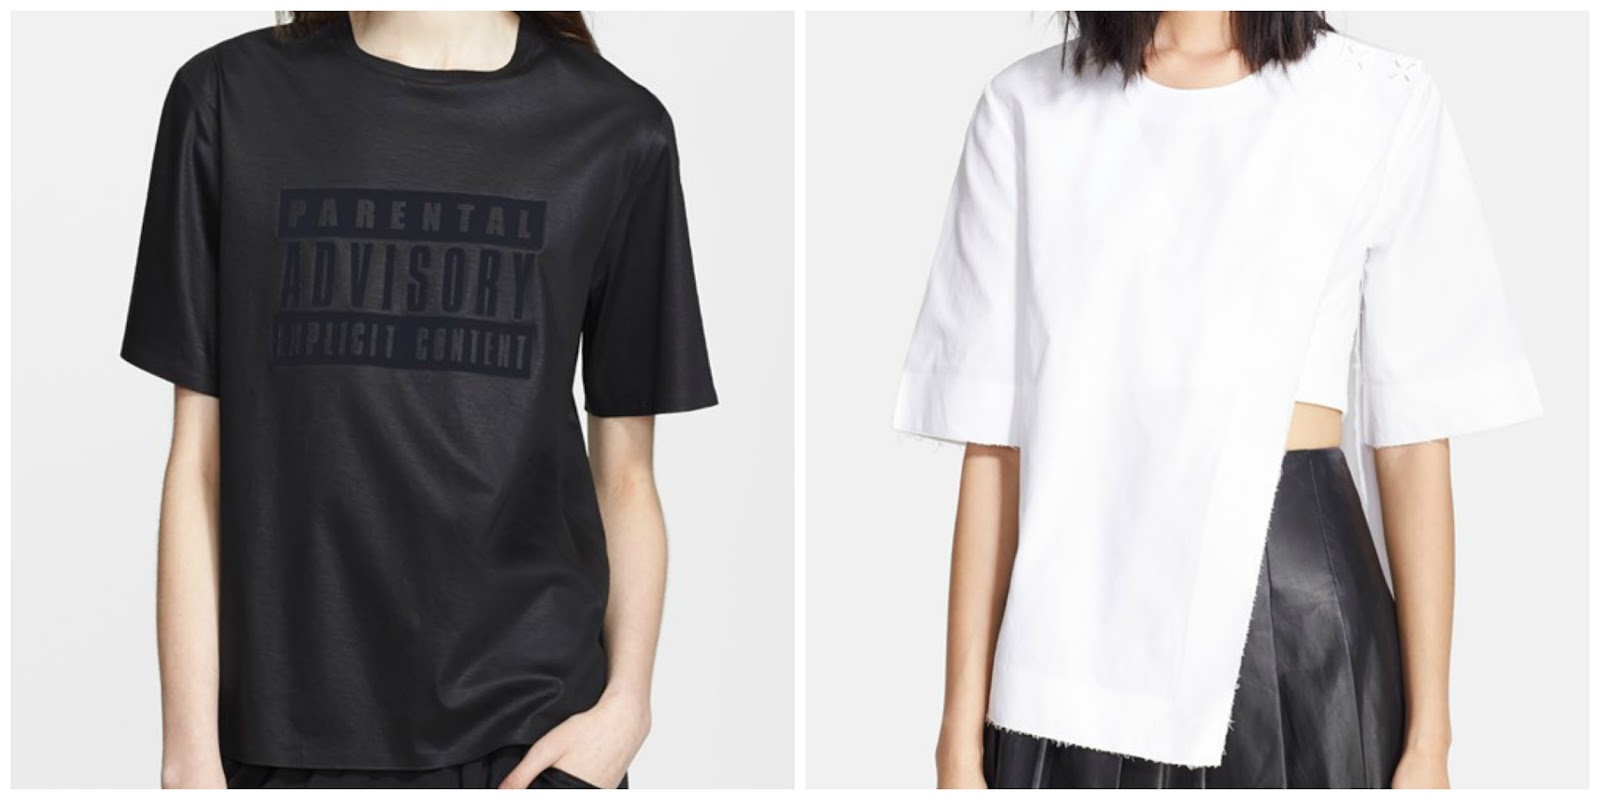 Alexander Wang x H&M Collection - what to expect? , Alexander Wang x H&M Collection, #AlexanderWangxHM, Alexander Wang, H&M, Collection, fashion, collaboration, 6 November 2014,